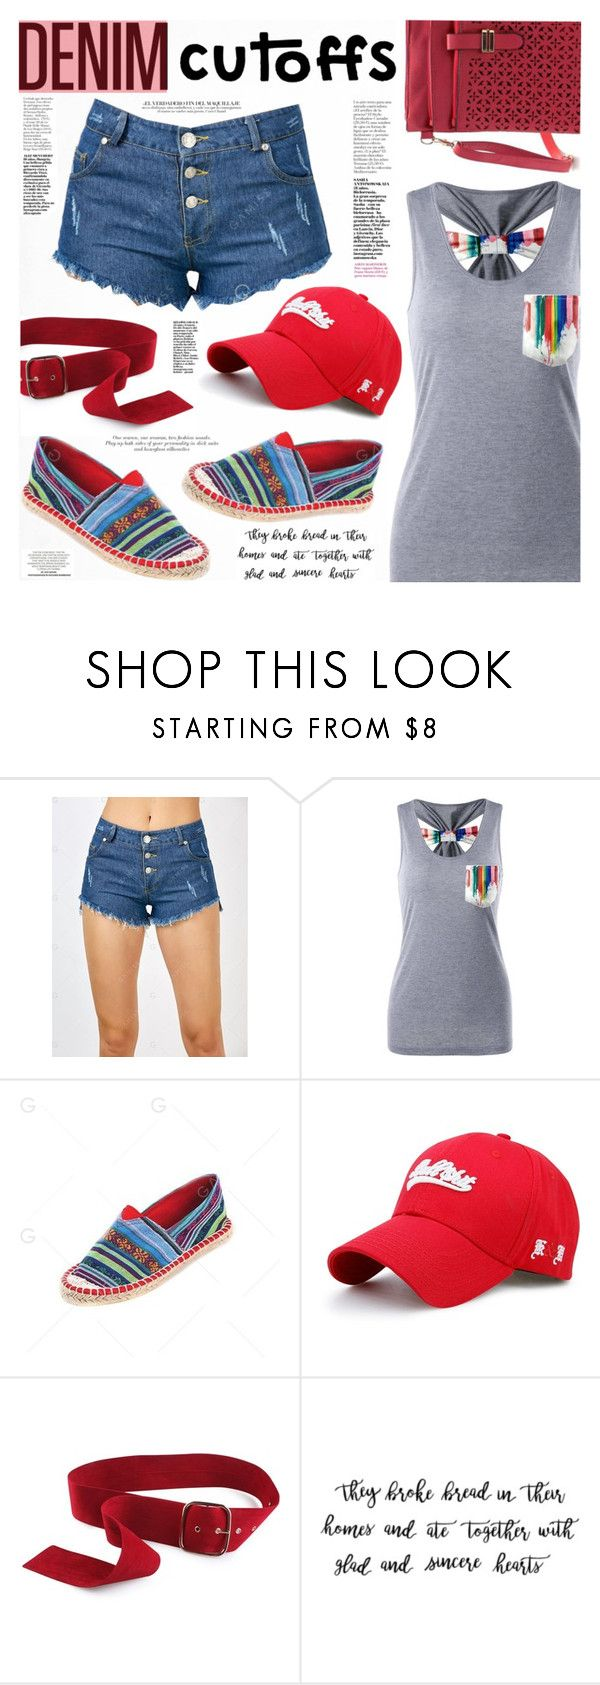 """Summer Staple: Denim Cutoffs"" by katjuncica ❤ liked on Polyvore featuring red, tanktop, shorts, summerstyle and DENIMCUTOFFS"